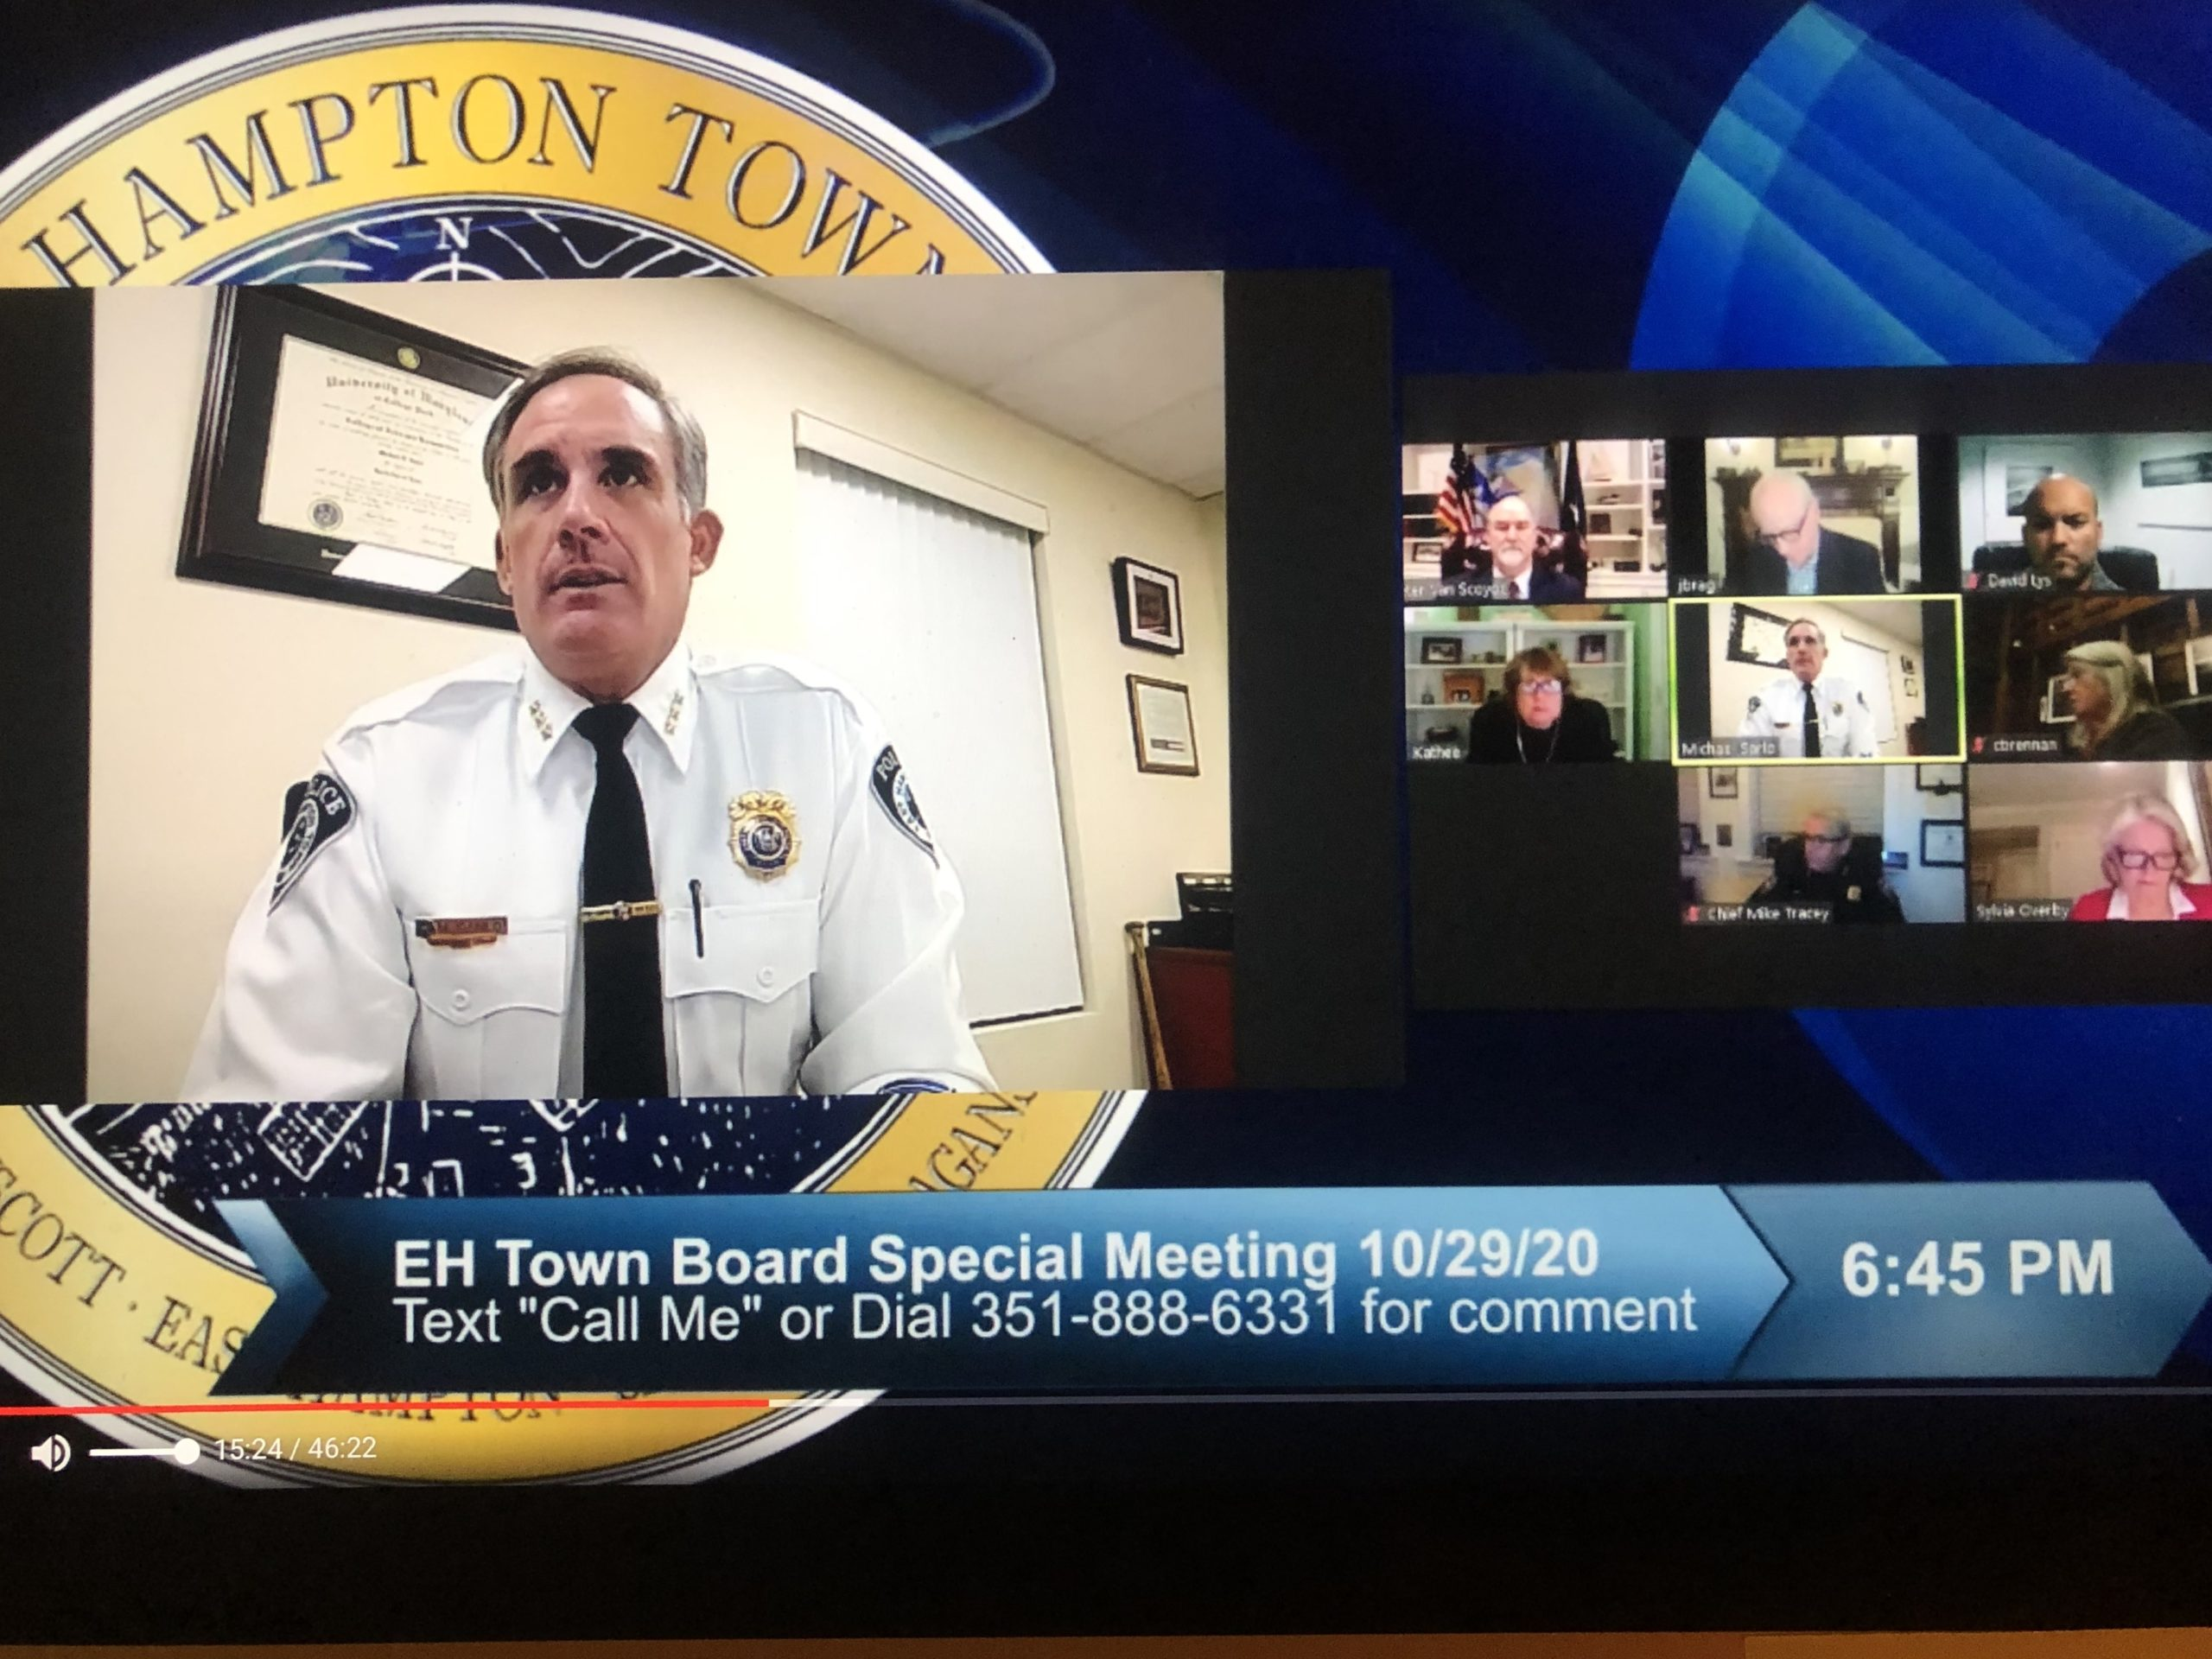 East Hampton Town has begun its state mandated process of examining police protection in the town and adjoining villages. East Hampton Town Police Chief Michael Sarlo said his department welcomes the process and is already well on the road to implementing many of the state's recommendations.